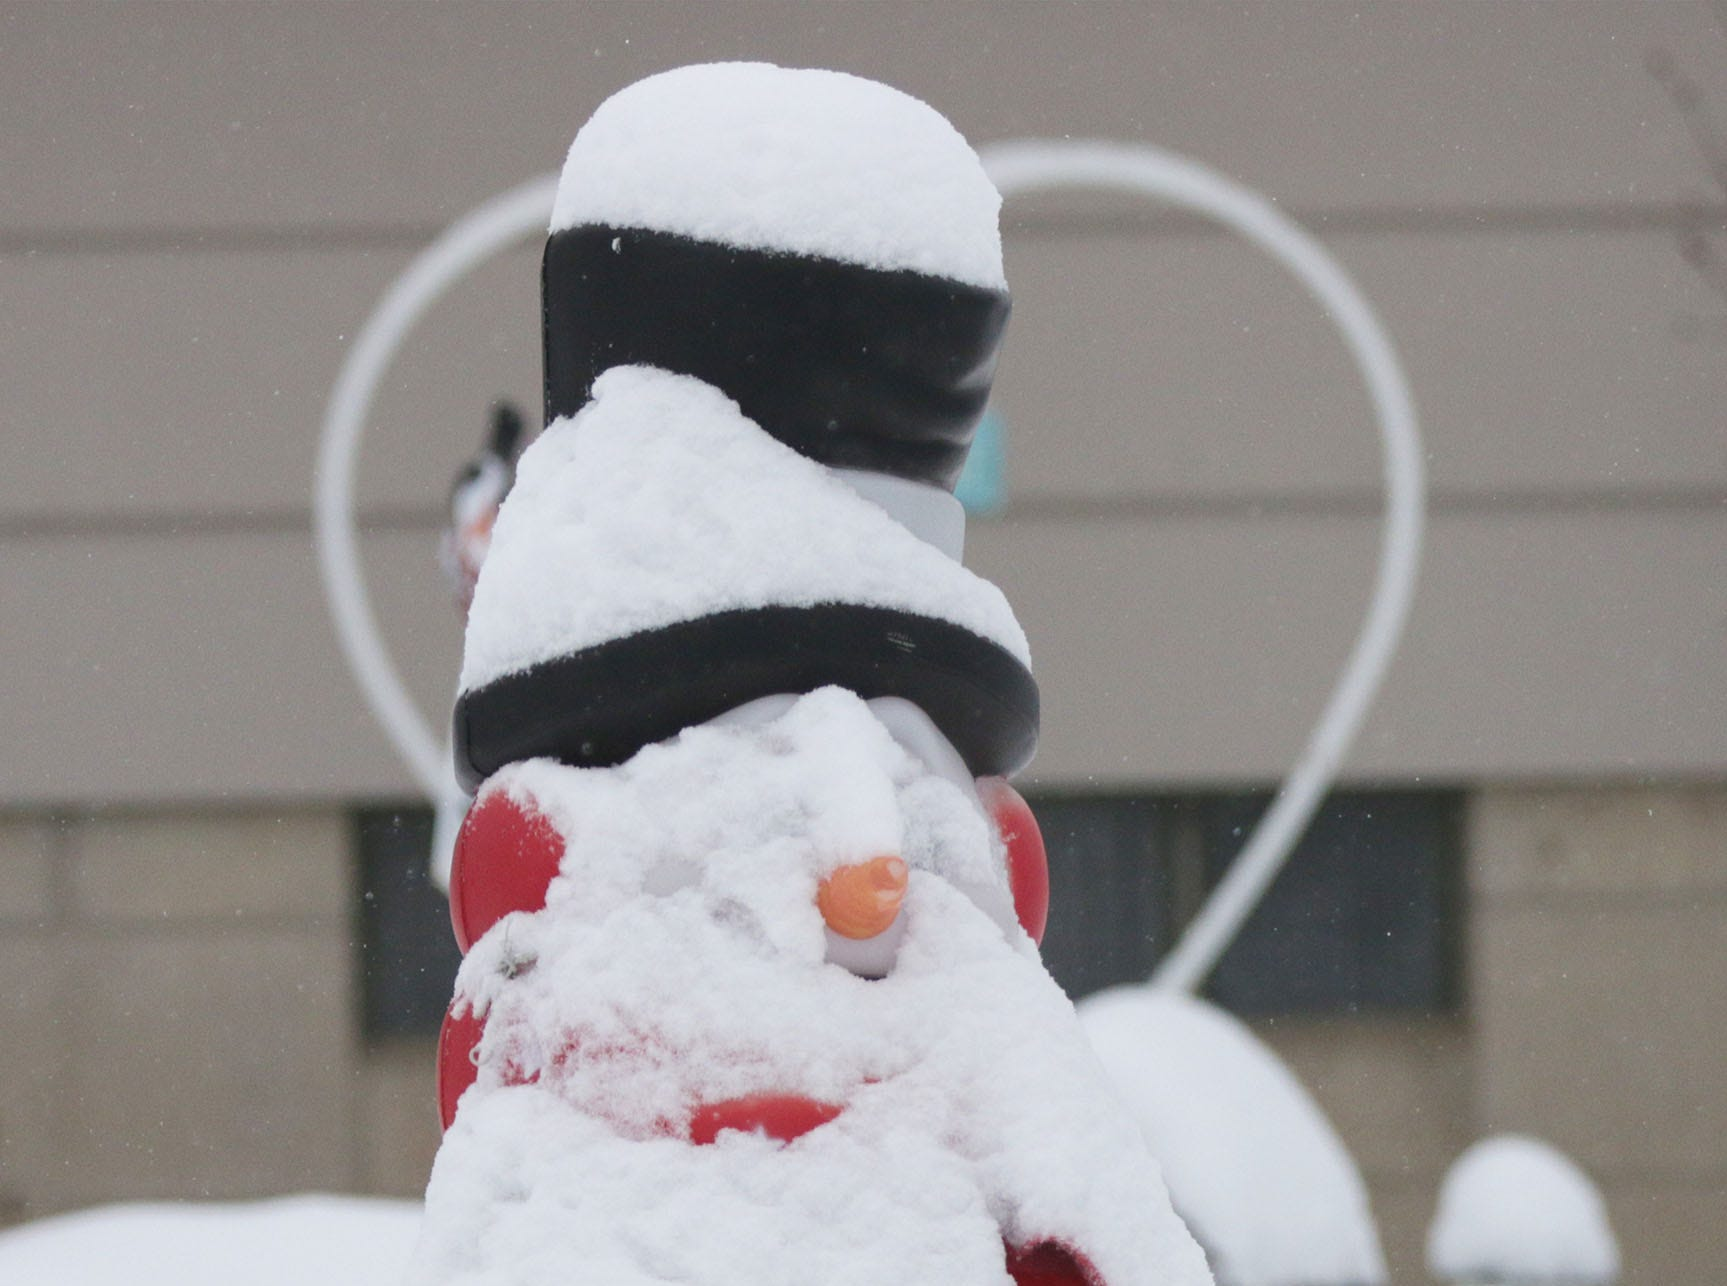 A snow man on Sheboygan's south side has a fresh coat of snow, Wednesday, January 23, 2019, in Sheboygan, Wis.